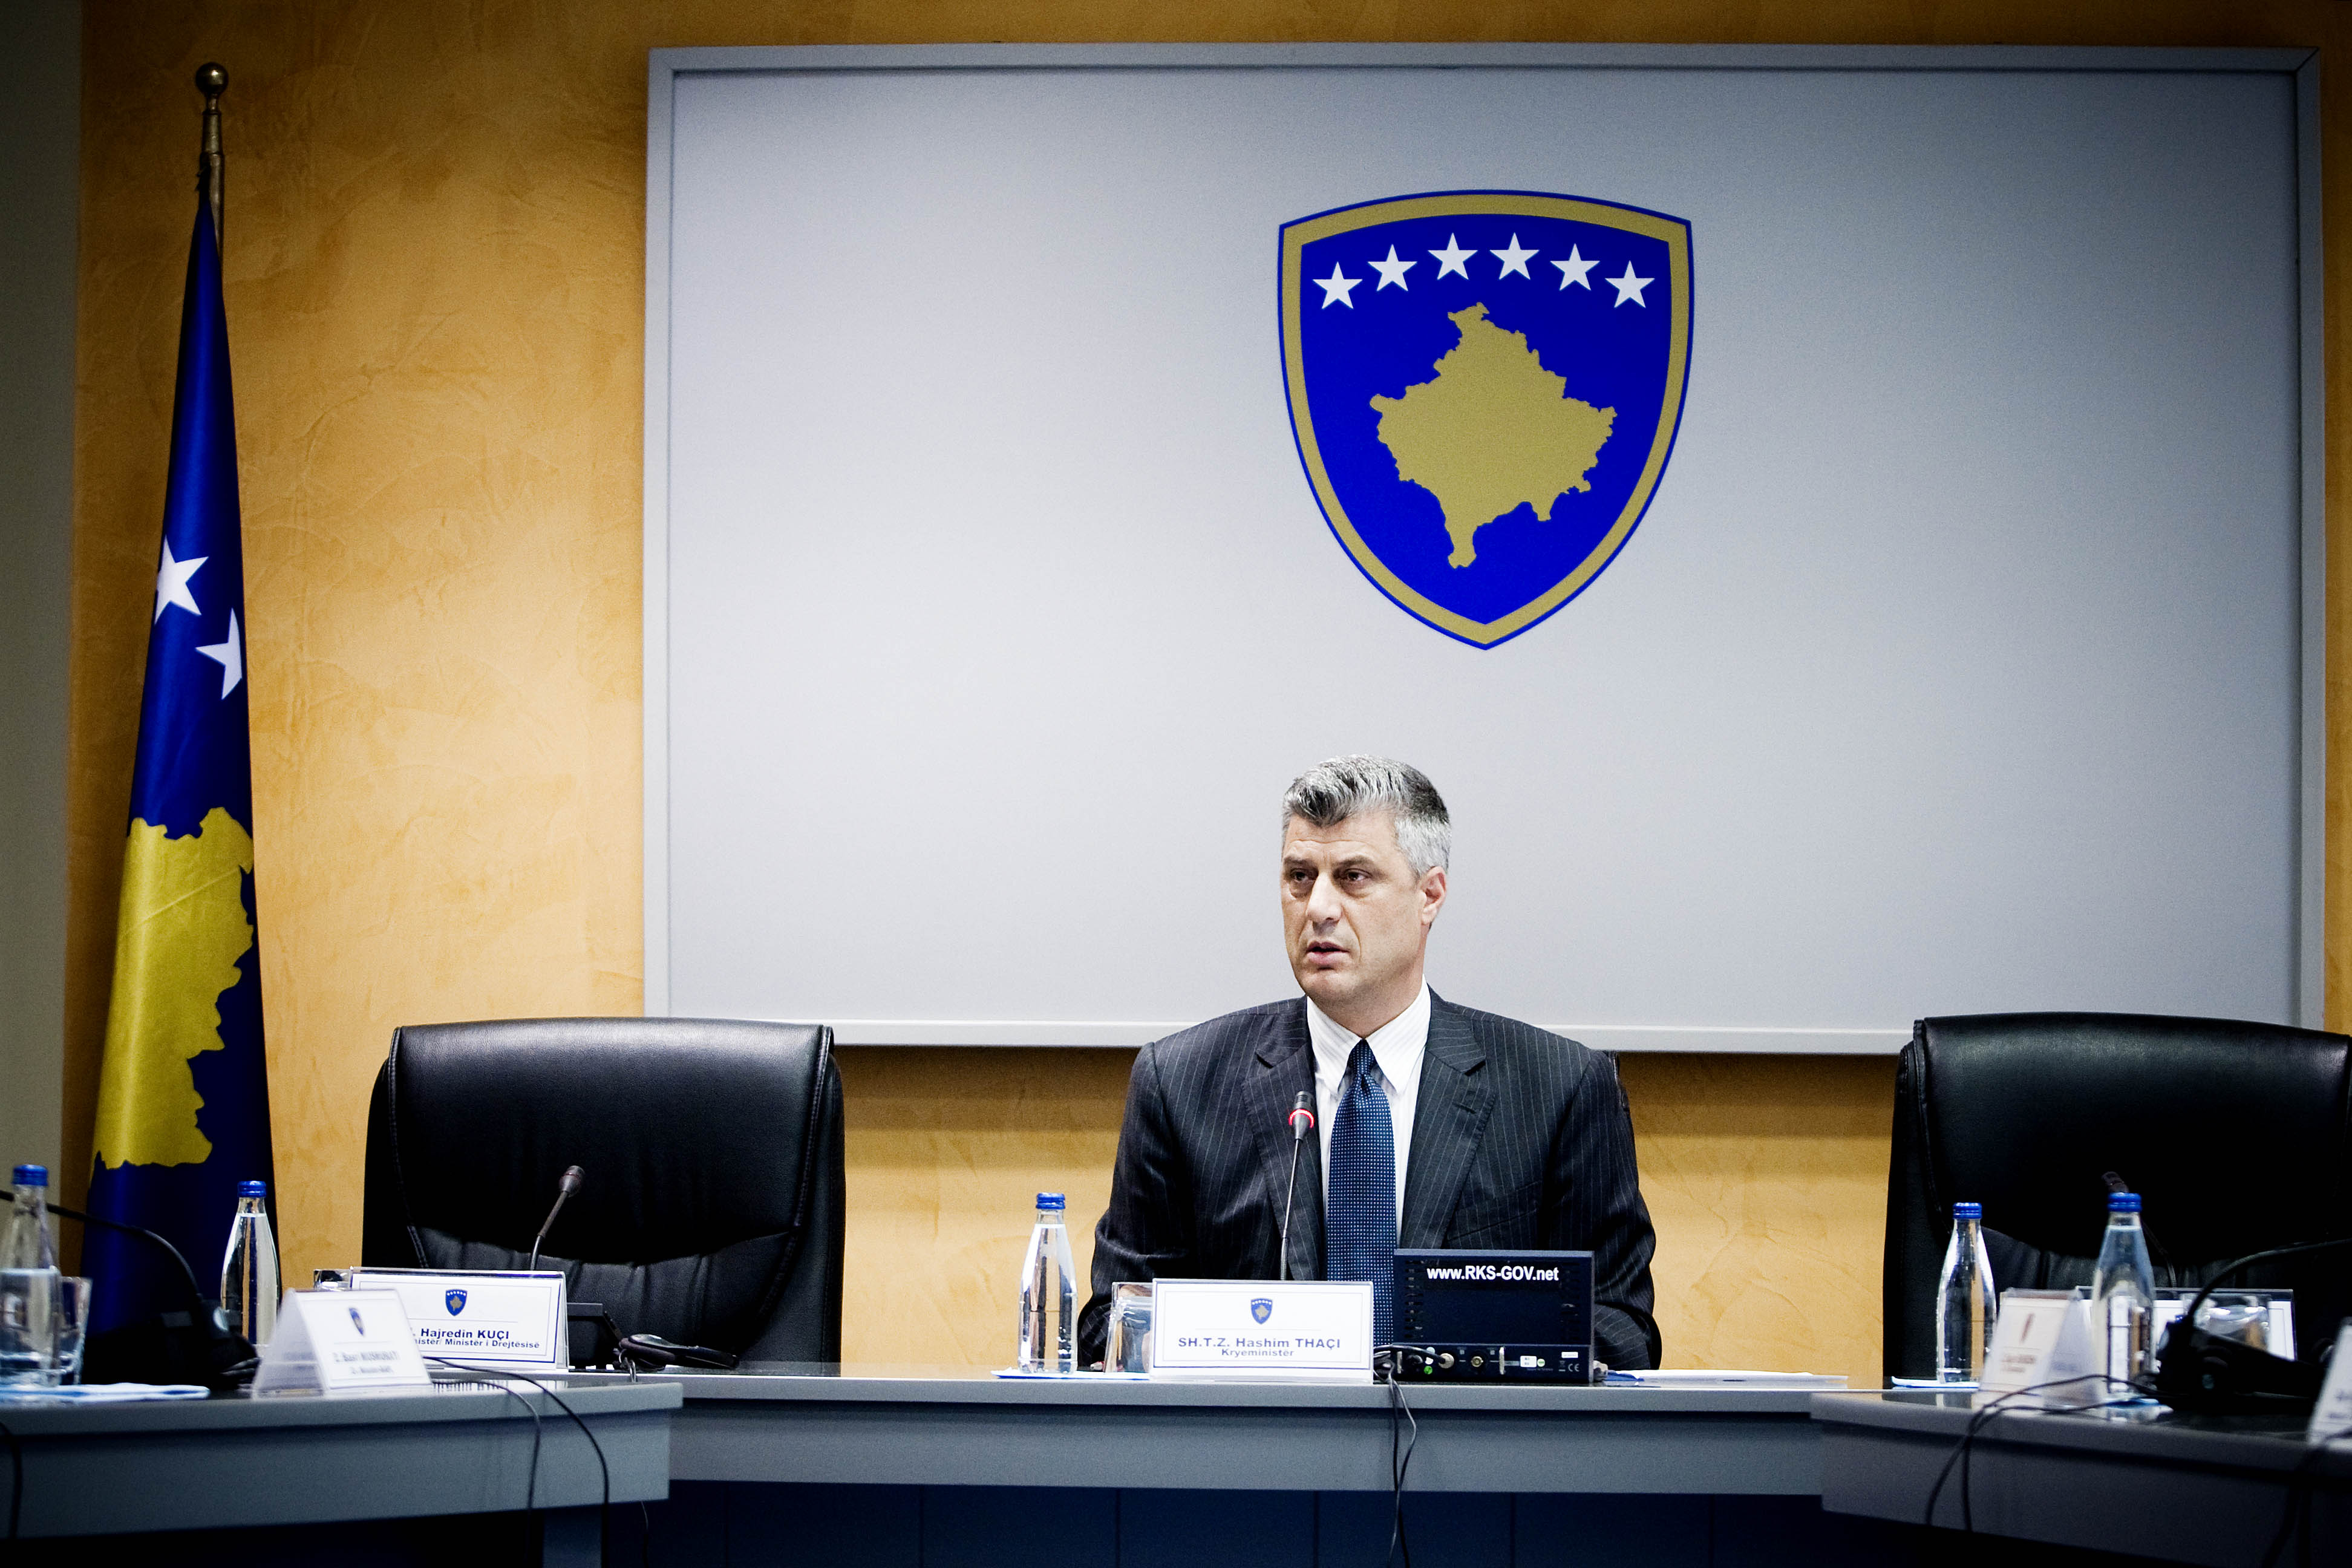 Opposition is not strong enough to overthrow Thaci's government